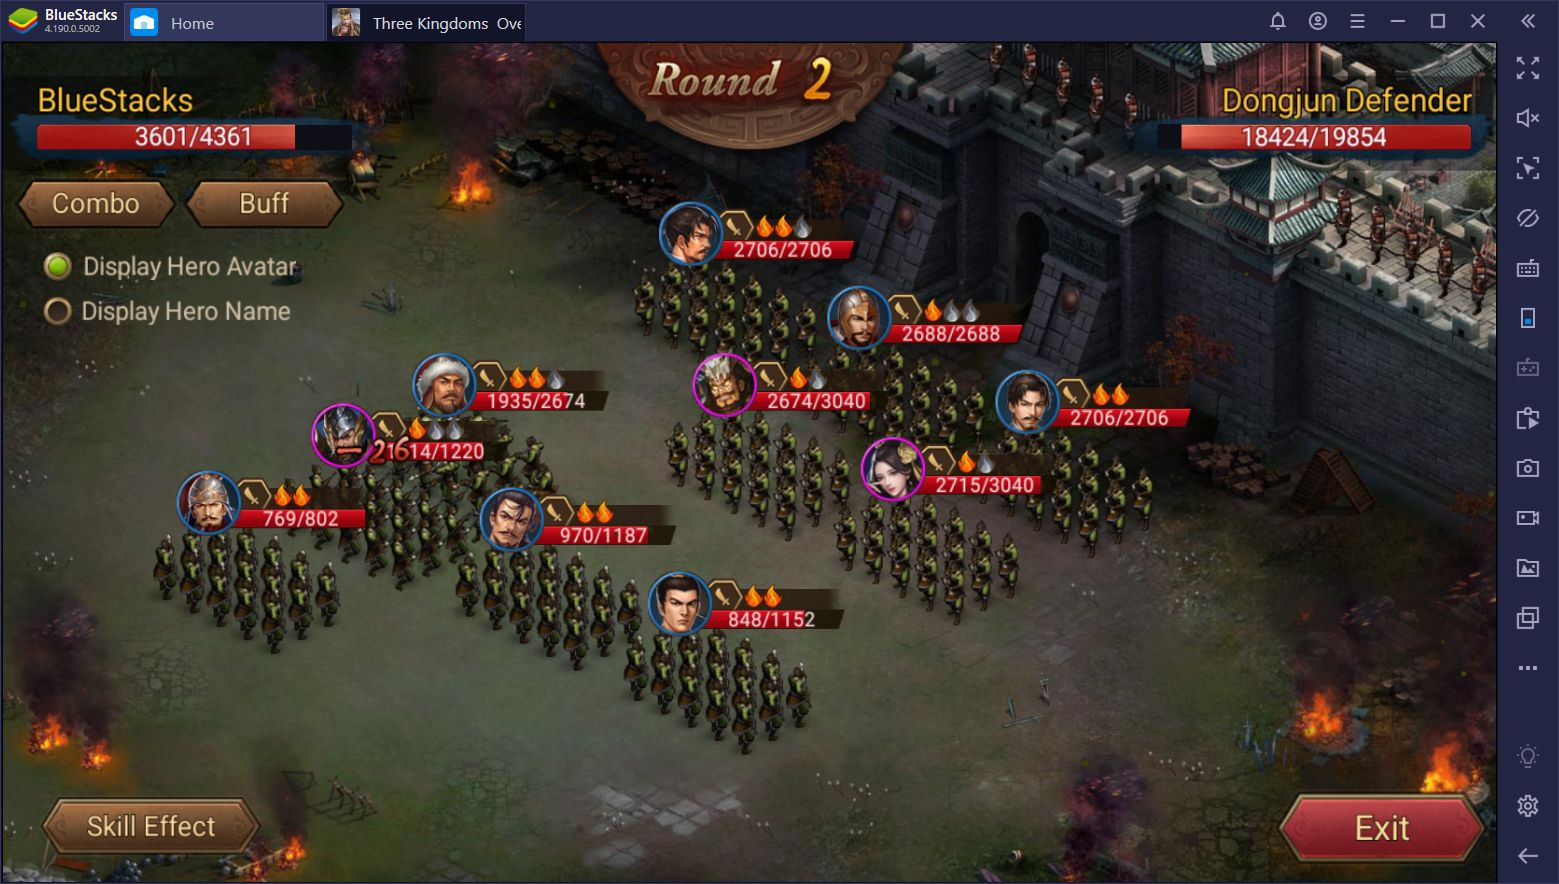 Three Kingdoms: Overlord – Tips and Tricks for Playing on BlueStacks